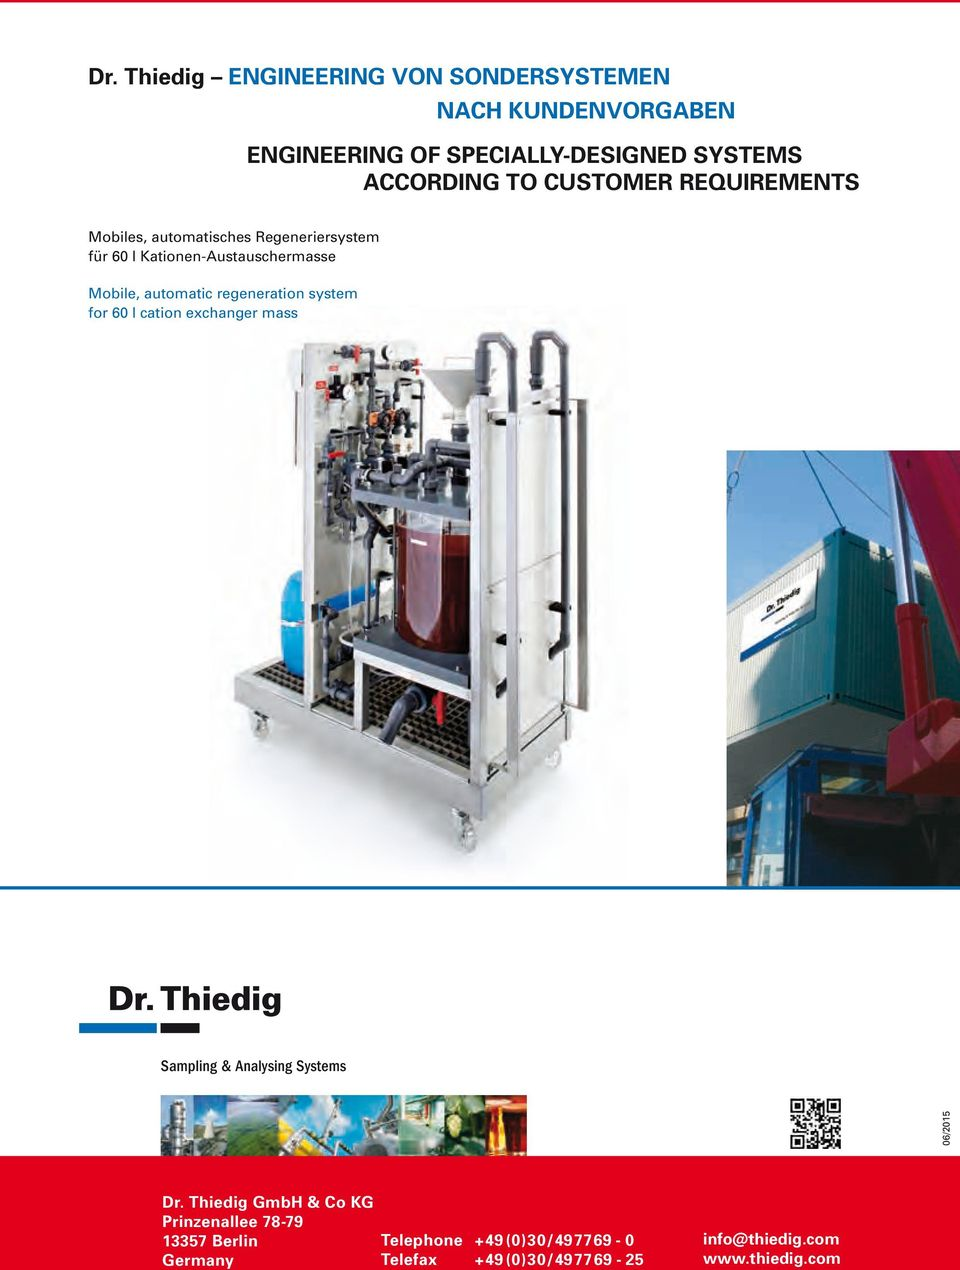 regeneration system for 60 l cation exchanger mass Sampling & Analysing Systems 06/2015 Dr.